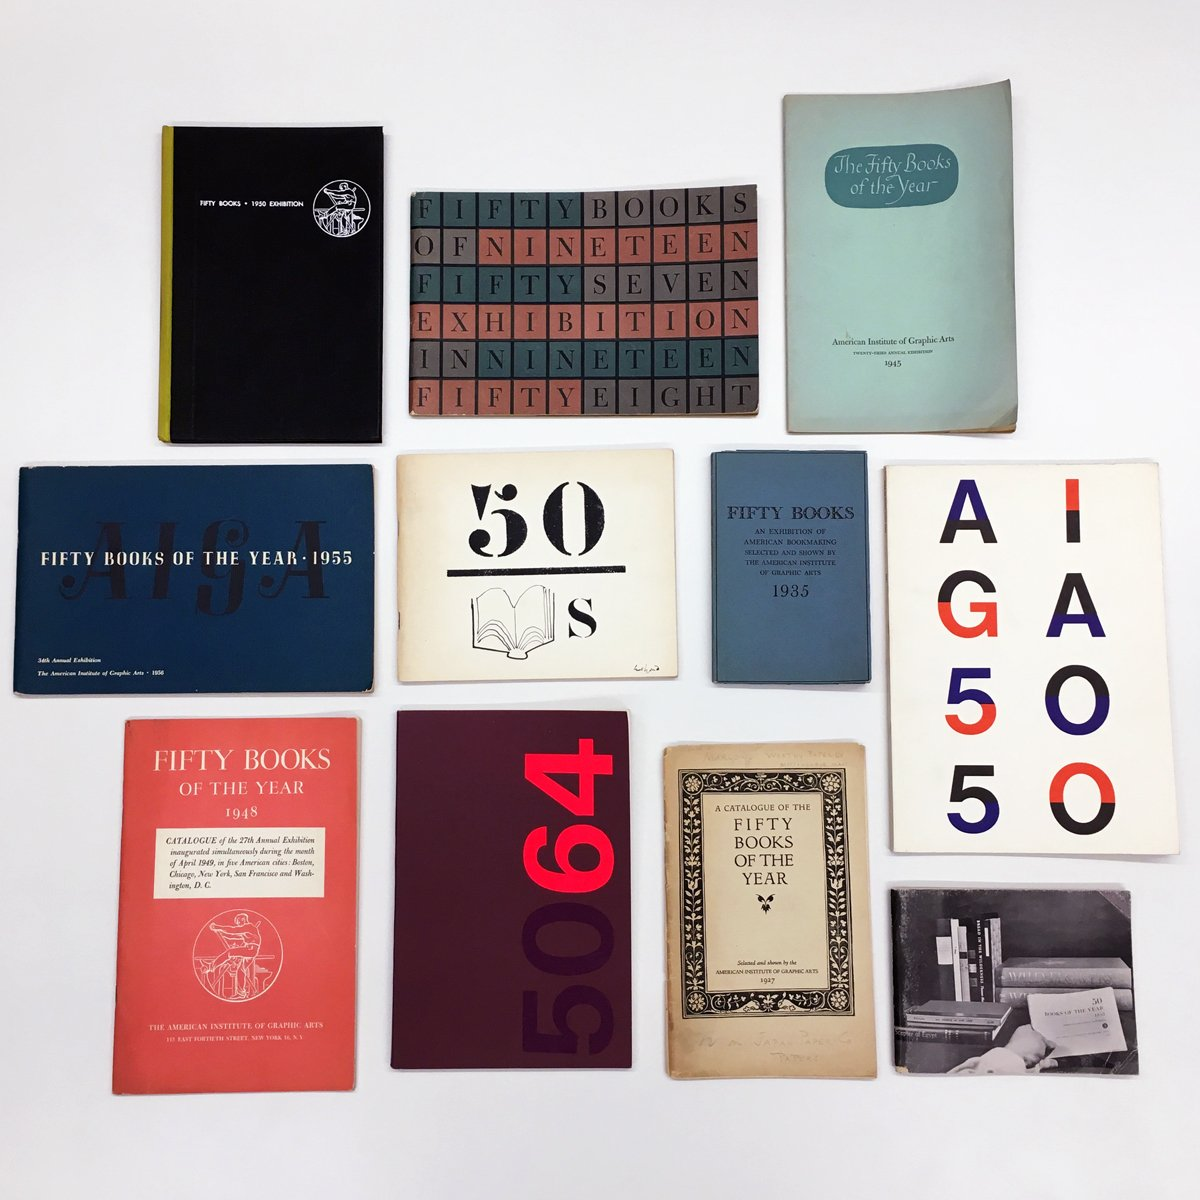 Bibliophiles + design nerds rejoice! Today we launch BOOKENDS—book/cover design; lead-up to 2016 50 Books|50 Covers #AIGAarchives #AIGA5050 https://t.co/3LWM7cML9V